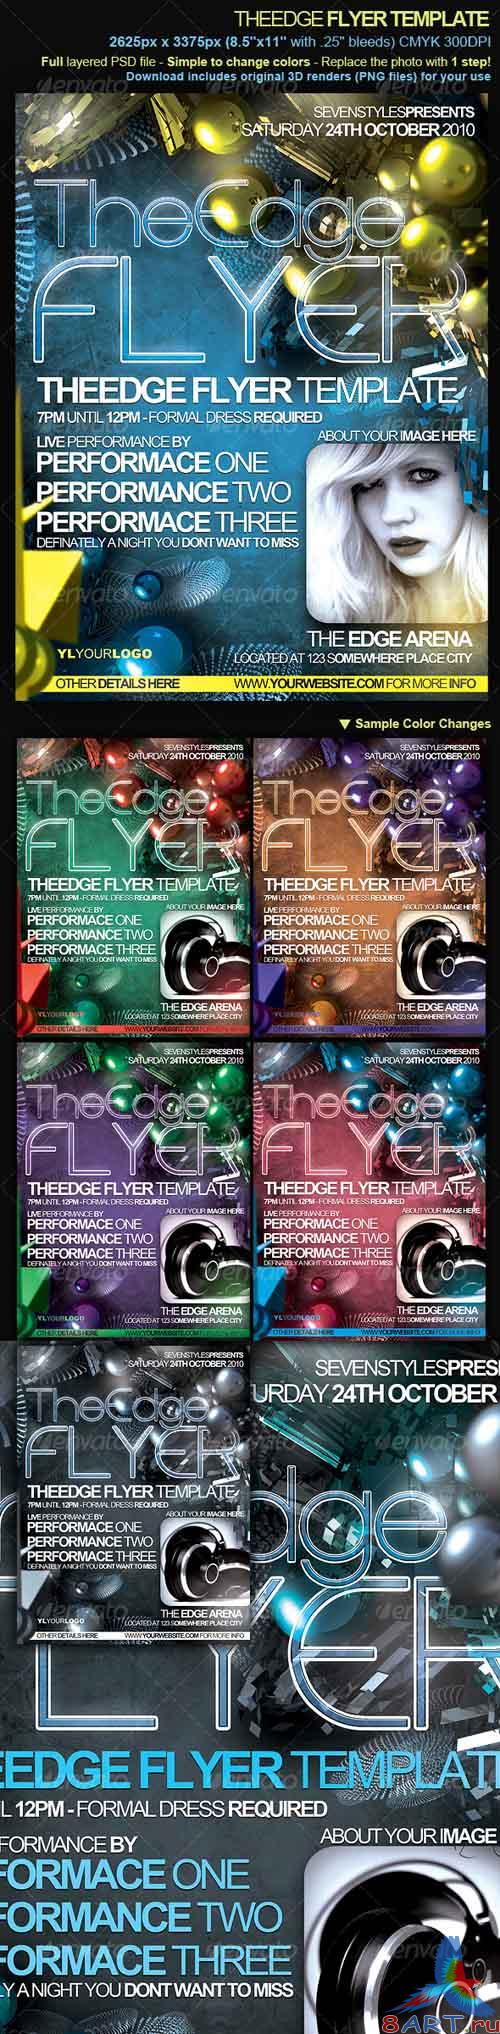 Theedge flyer poster template - GraphicRiver